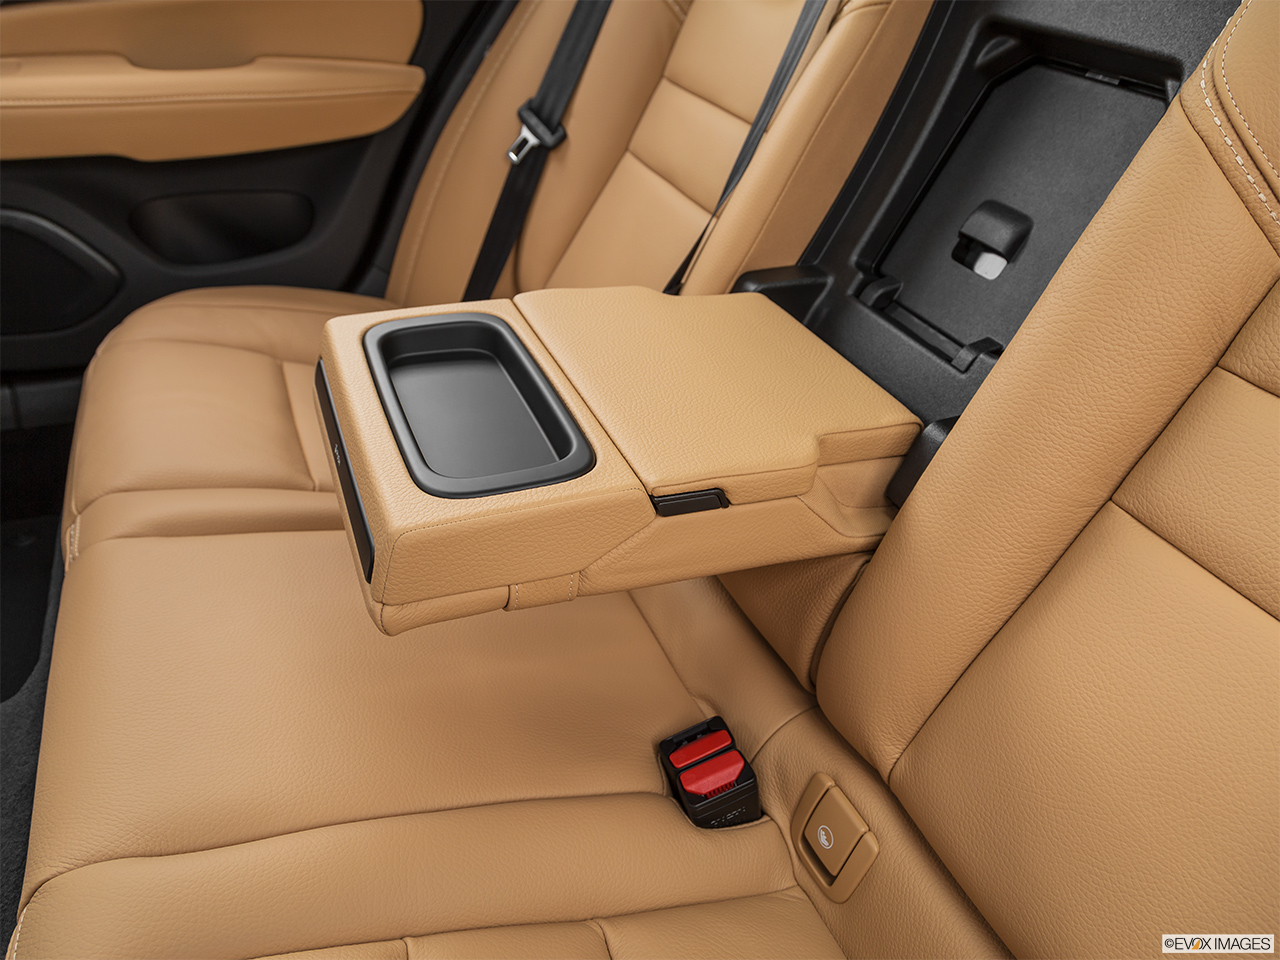 2020 Volvo V60 Cross Country T5 AWD Rear center console with closed lid from driver's side looking down.